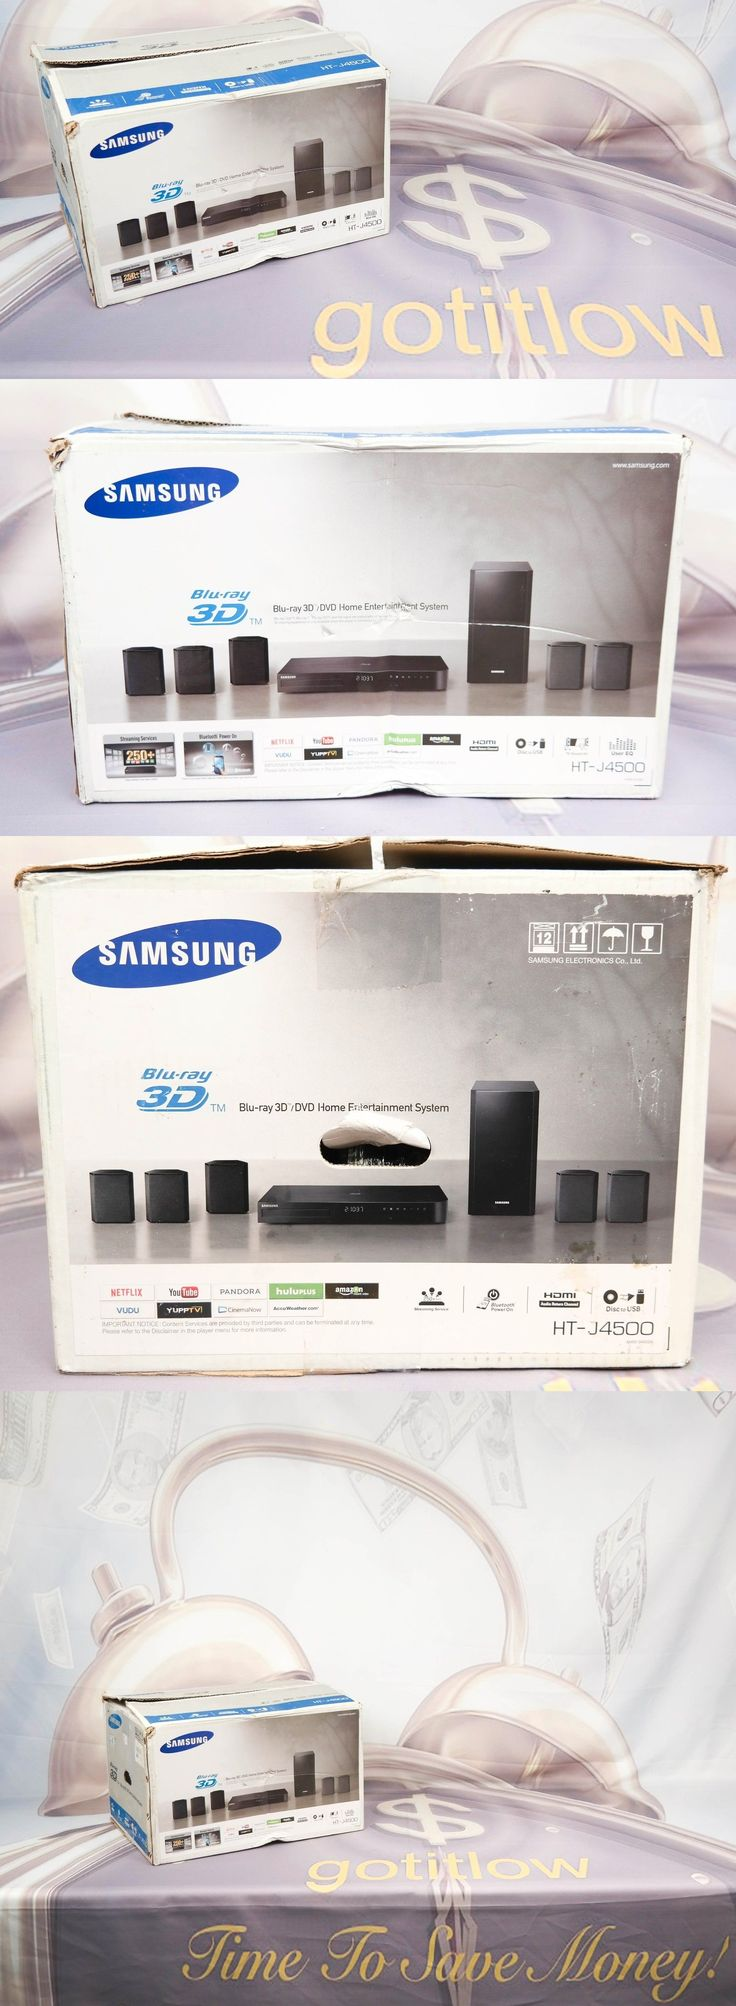 Home Theater Systems: Samsung Htj4500 5.1 Channel Smart Blu-Ray Home Theater System - Ht-J4500/Za -> BUY IT NOW ONLY: $159.99 on eBay!